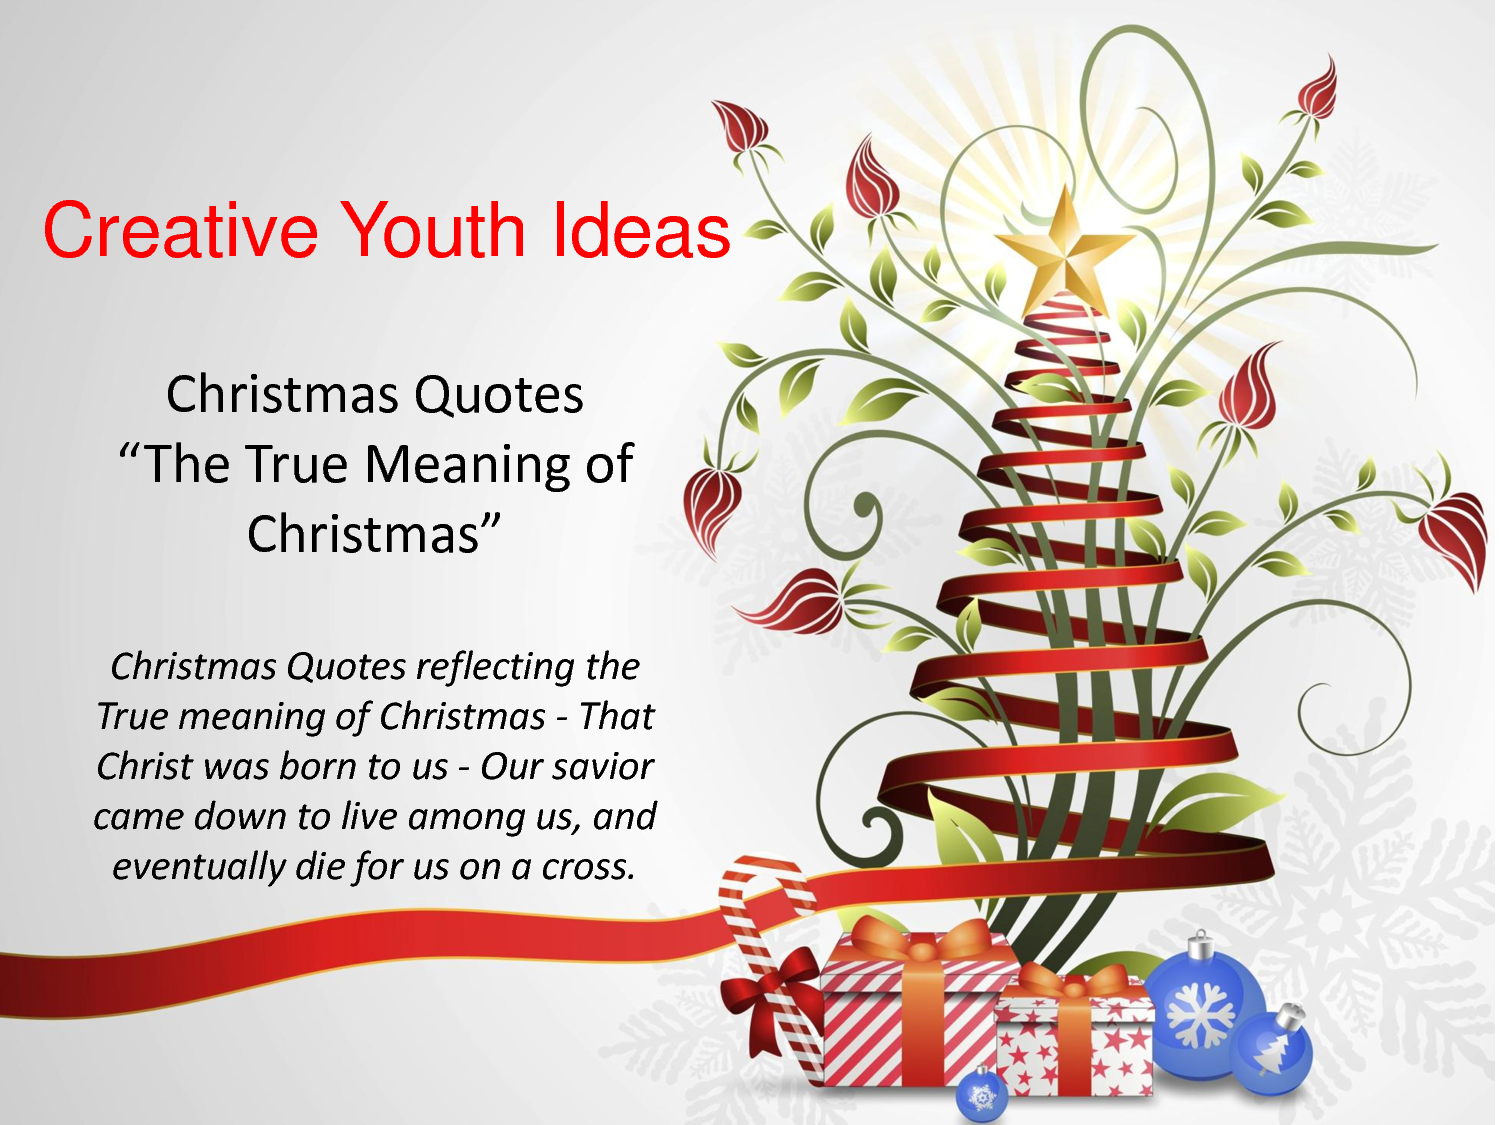 Christmas Quotes And Graphics: 20 Merry Christmas Quotes 2014